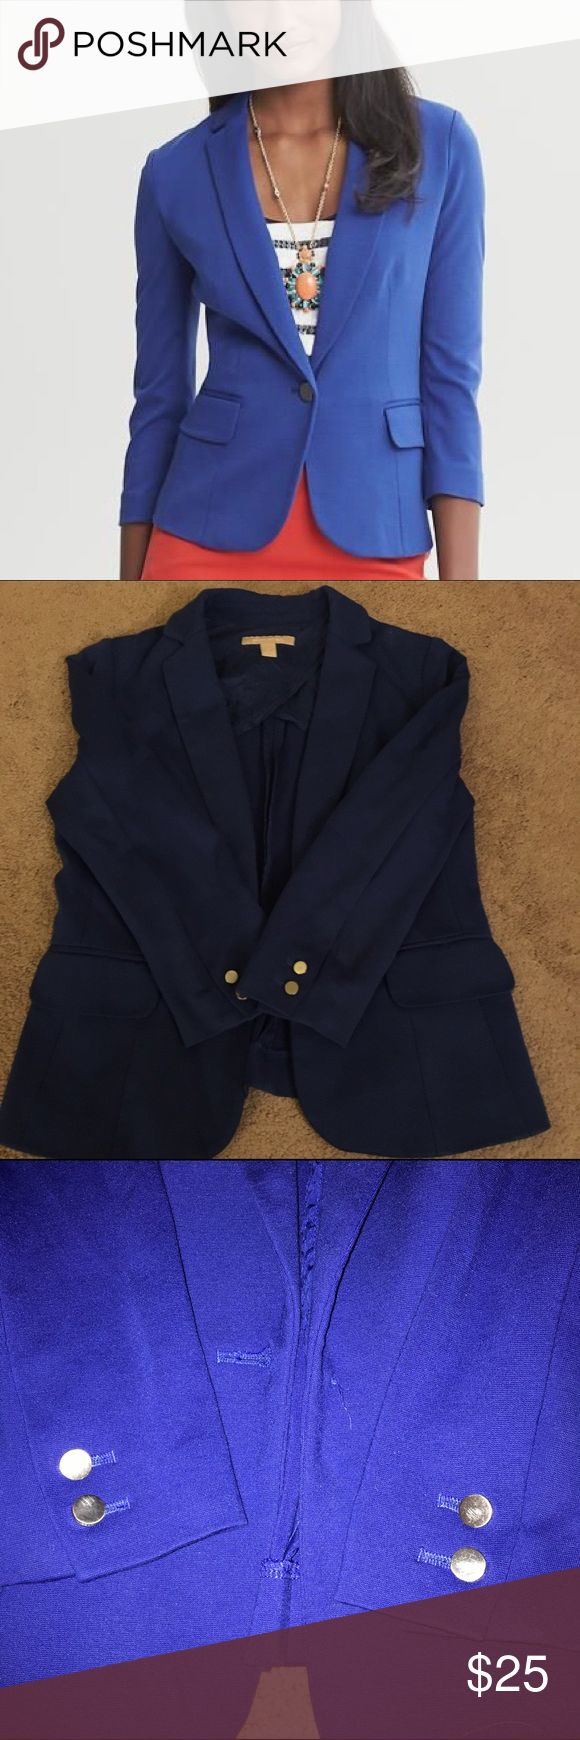 Banana Republic Cobalt Blazer 0 Excellent condition Blazer, middle closure button missing. No additional signs of wear. Hip length. 3/4 sleeves. Reasonable offers accepted, no trades. Smoke/pet free home. Banana Republic Jackets & Coats Blazers